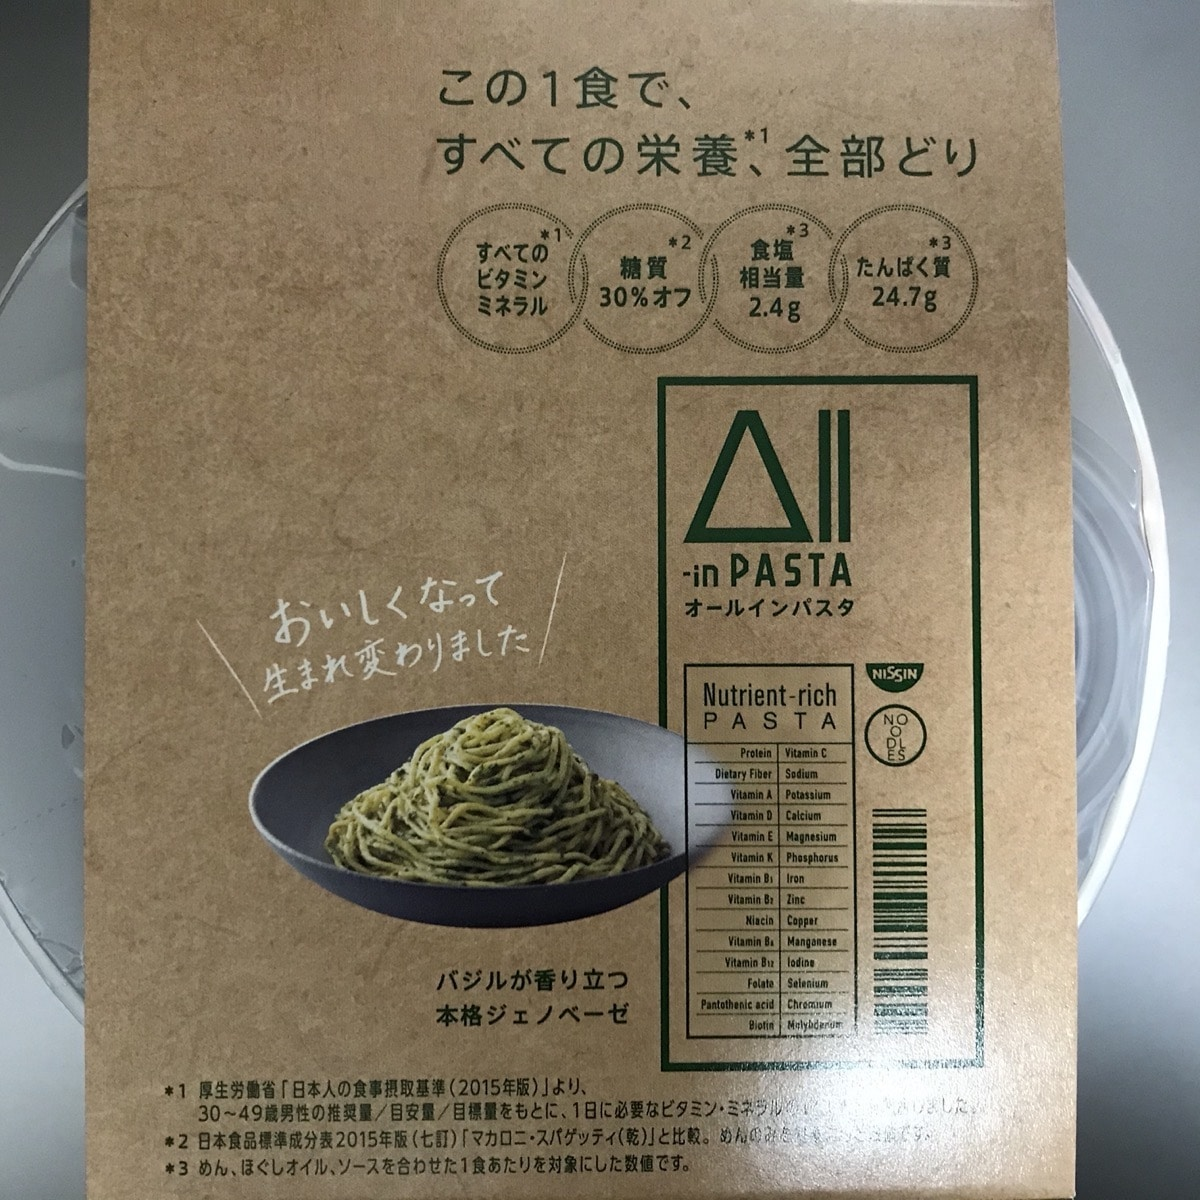 All-in Pasta, ジェノベーゼ